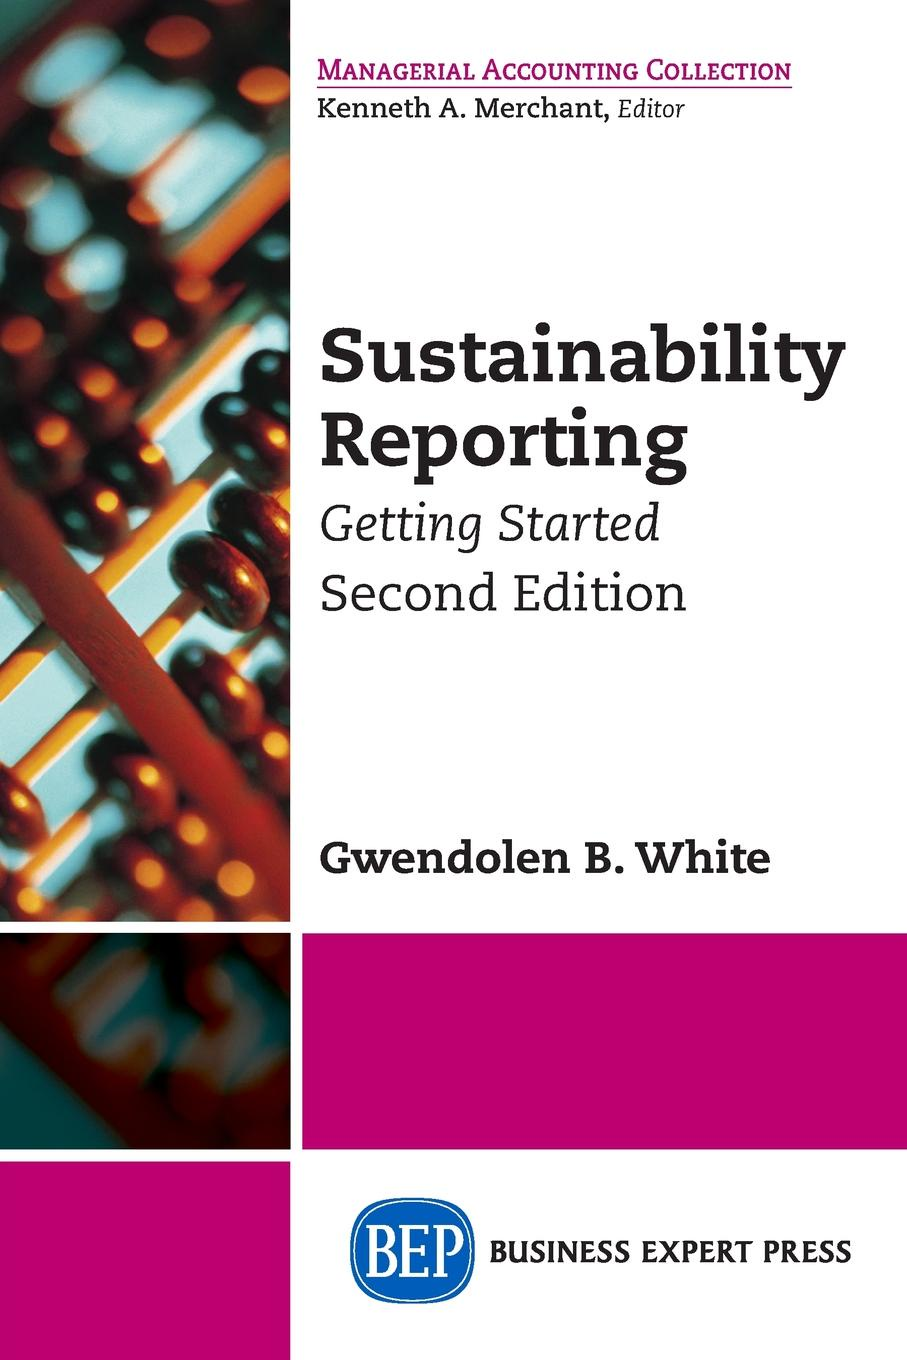 лучшая цена Gwendolen B. White Sustainability Reporting. Getting Started, Second Edition